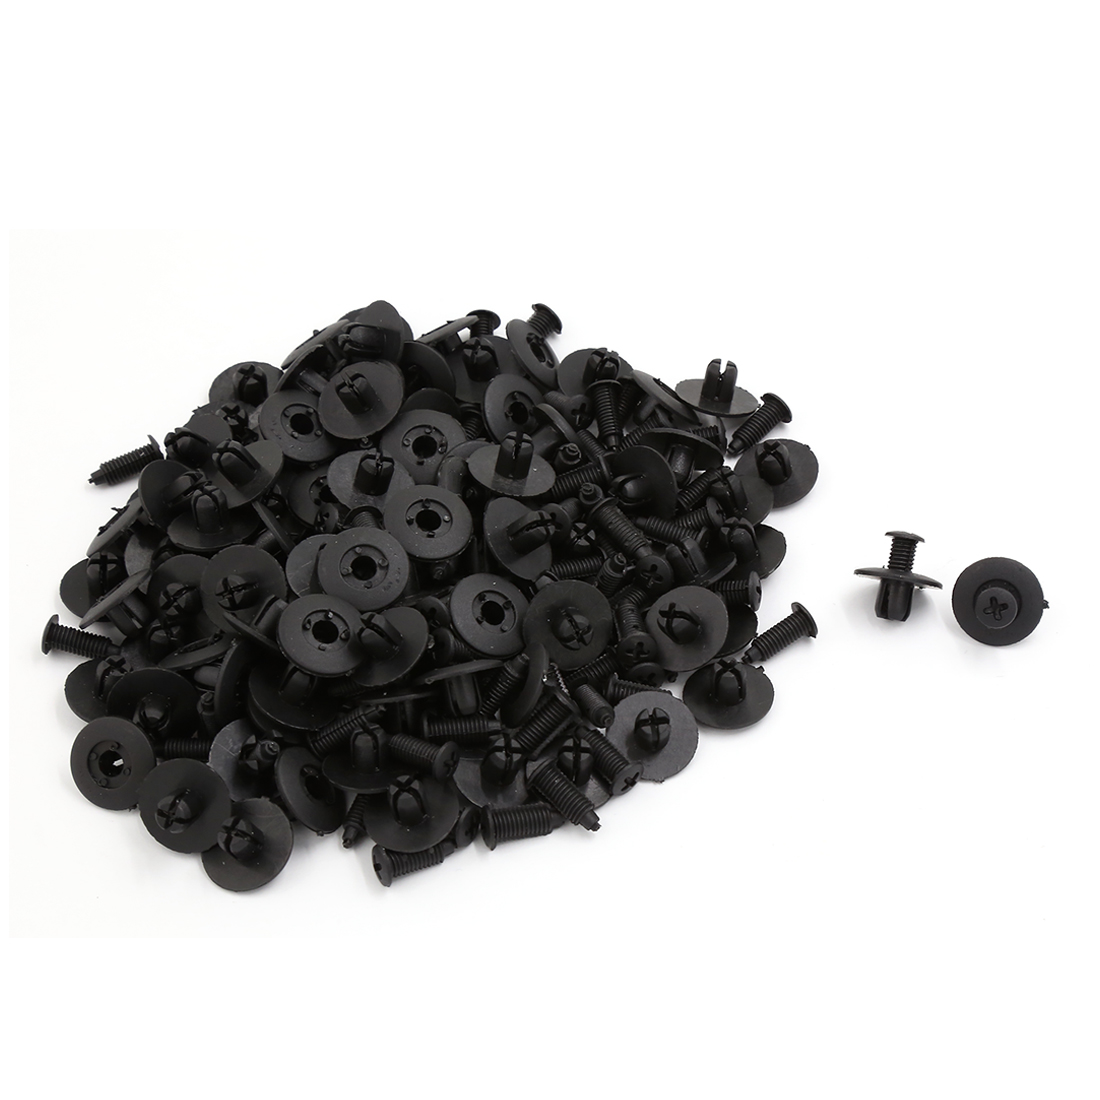 100 Pcs Plastic Car Door Bumper Retaining Screw Rivets Clips 8mm x 8mm x 20mm